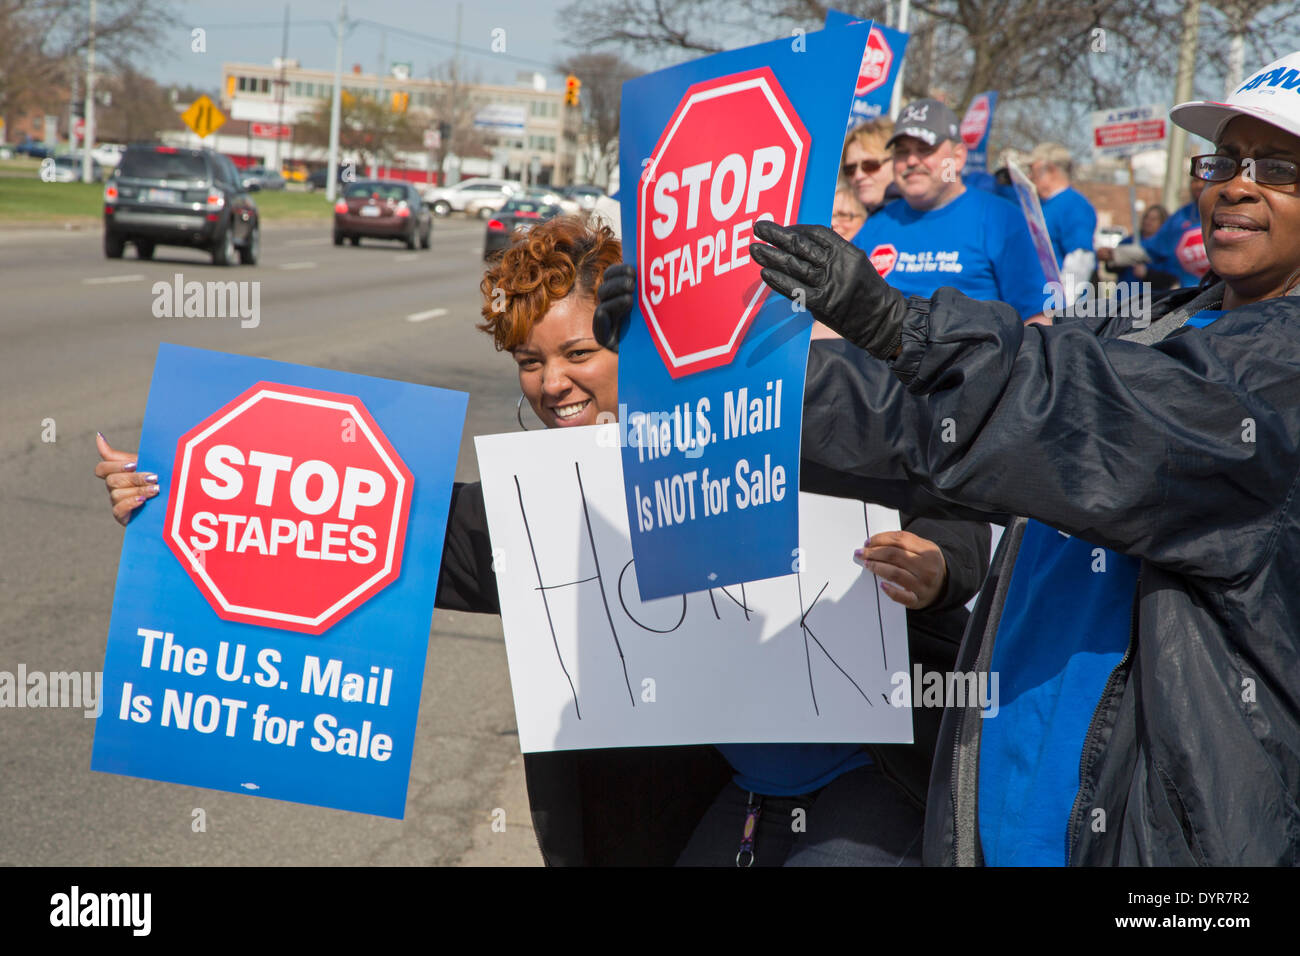 Dearborn, Michigan USA - Members of postal worker unions picket a Staples store to protest the U.S. Postal Service's plan to outsource postal services to the office supply chain. Unions say the privatization plan will result in low-paid, nonunion workers doing postal work. The picketing was part of a nationwide day of protest organized by the American Postal Workers Union. Credit:  Jim West/Alamy Live News - Stock Image